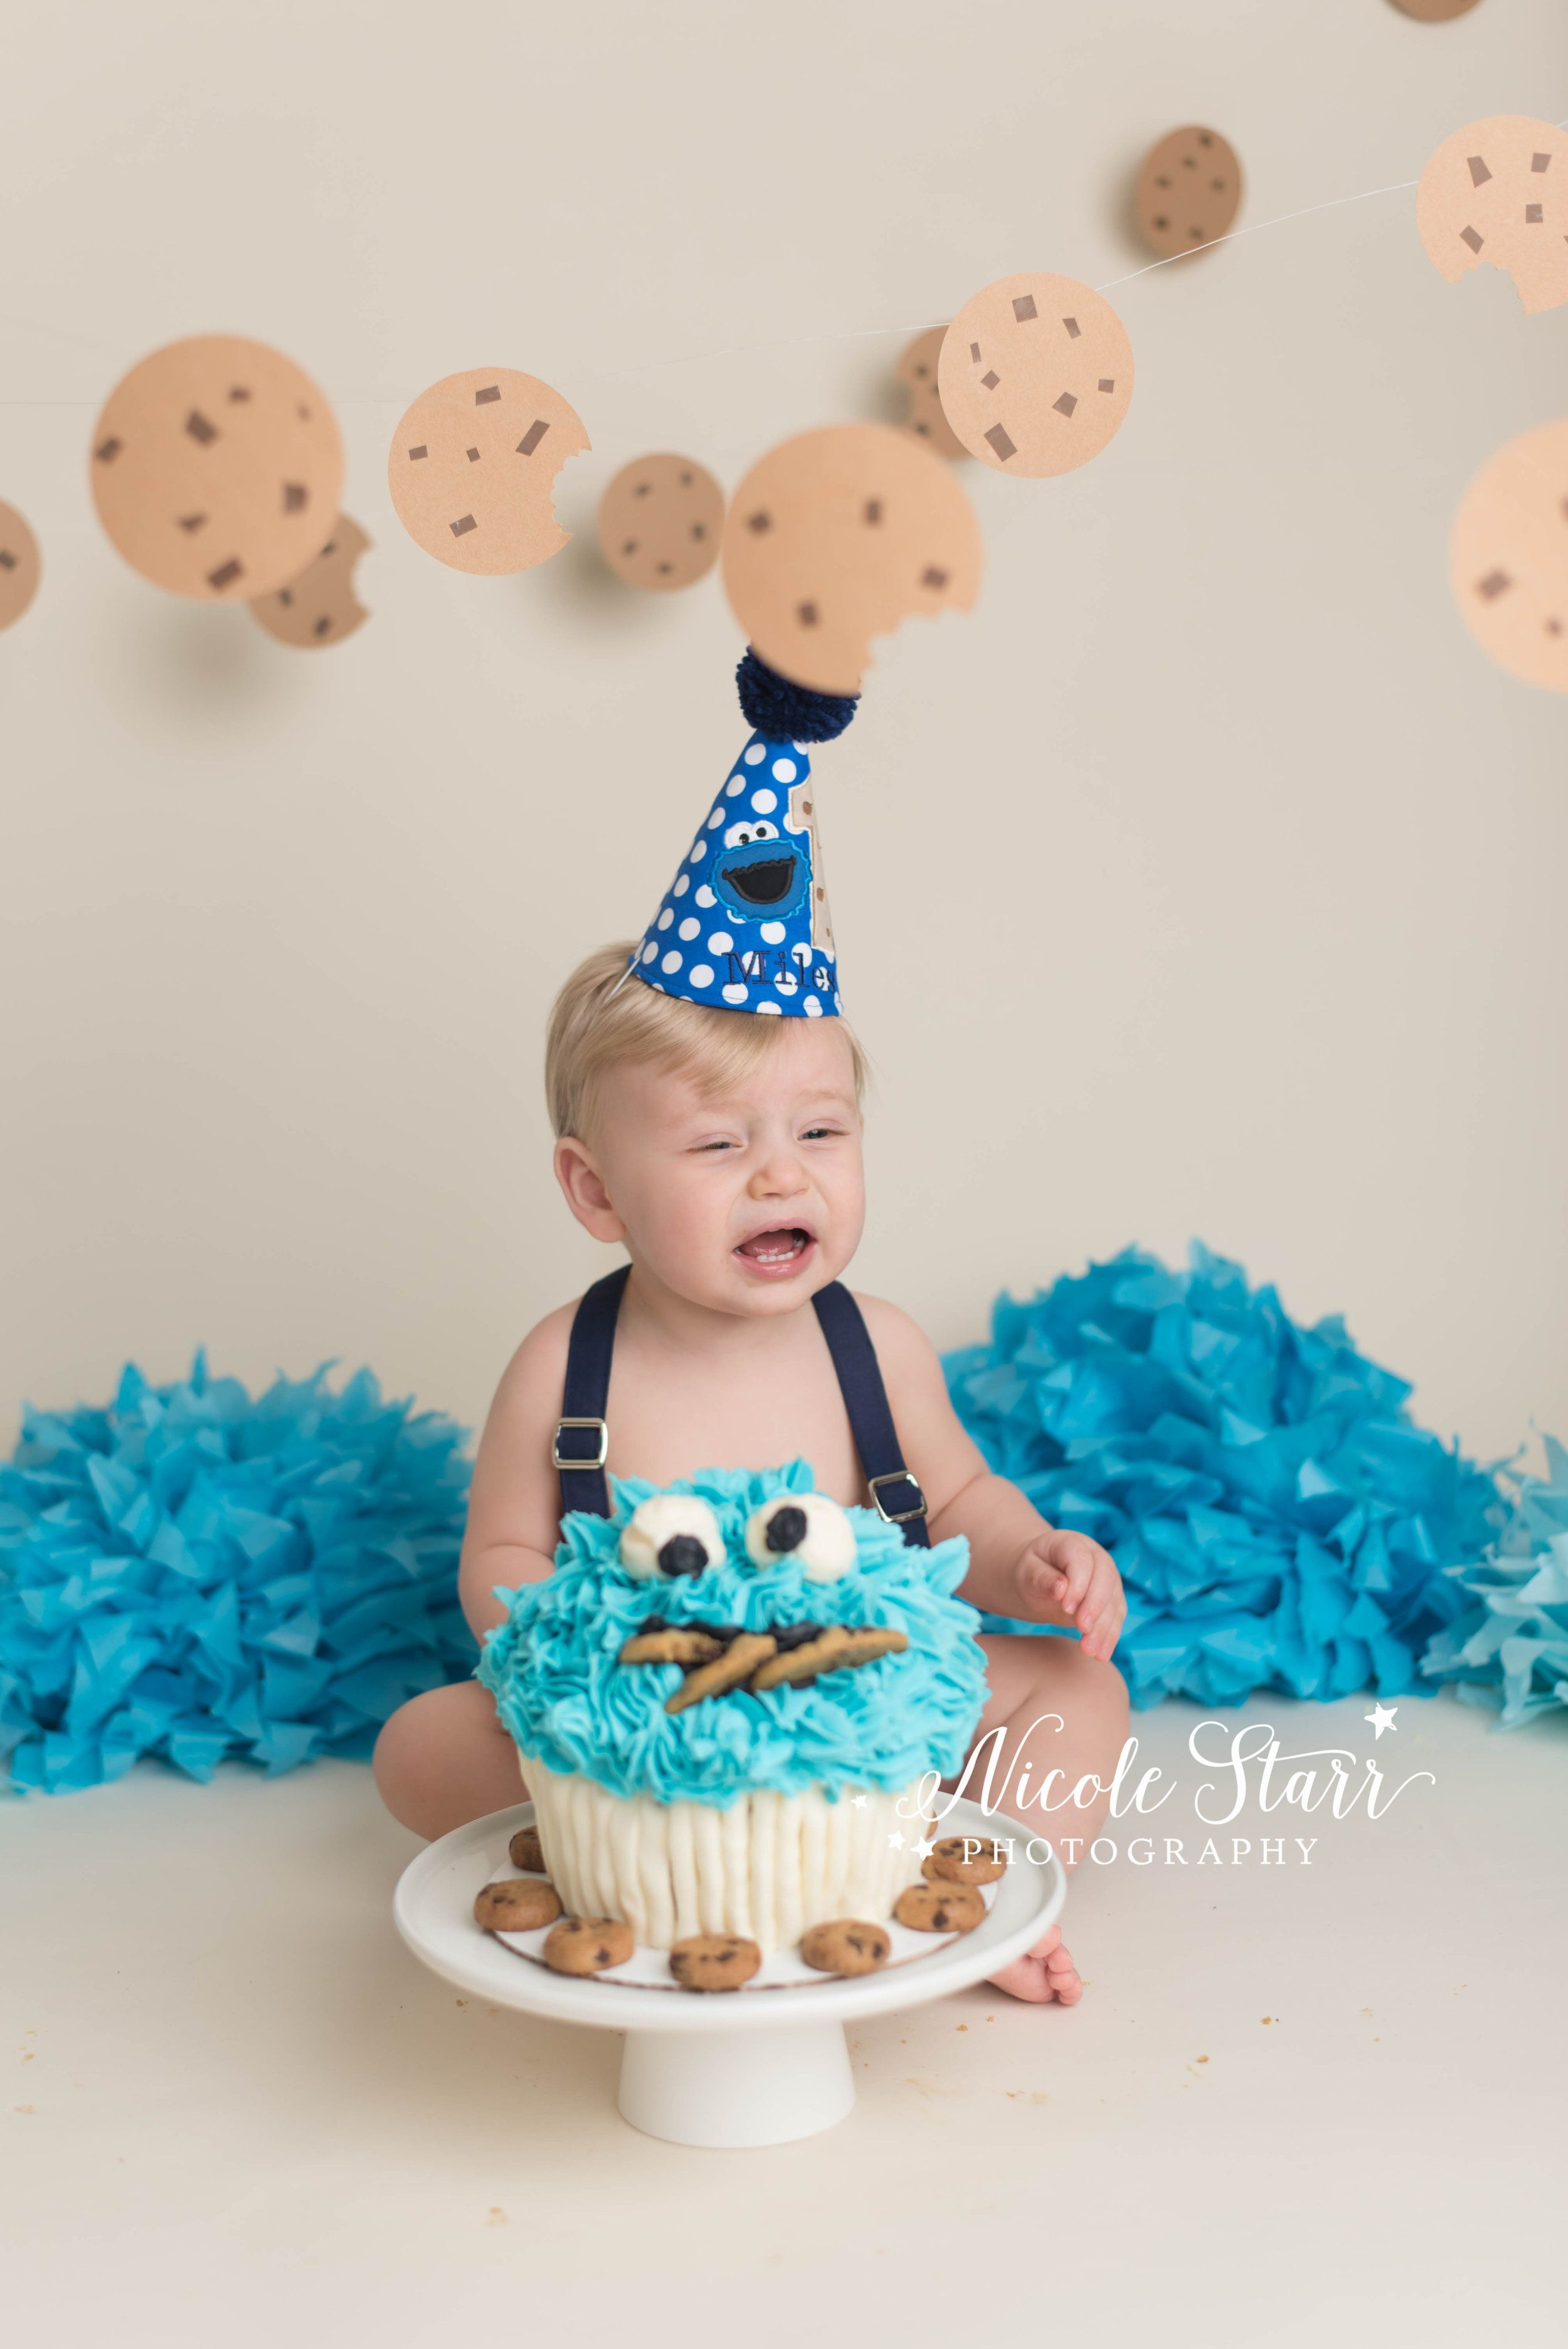 Phenomenal A Cookies Milk First Birthday Cake Smash Session With Images Personalised Birthday Cards Beptaeletsinfo